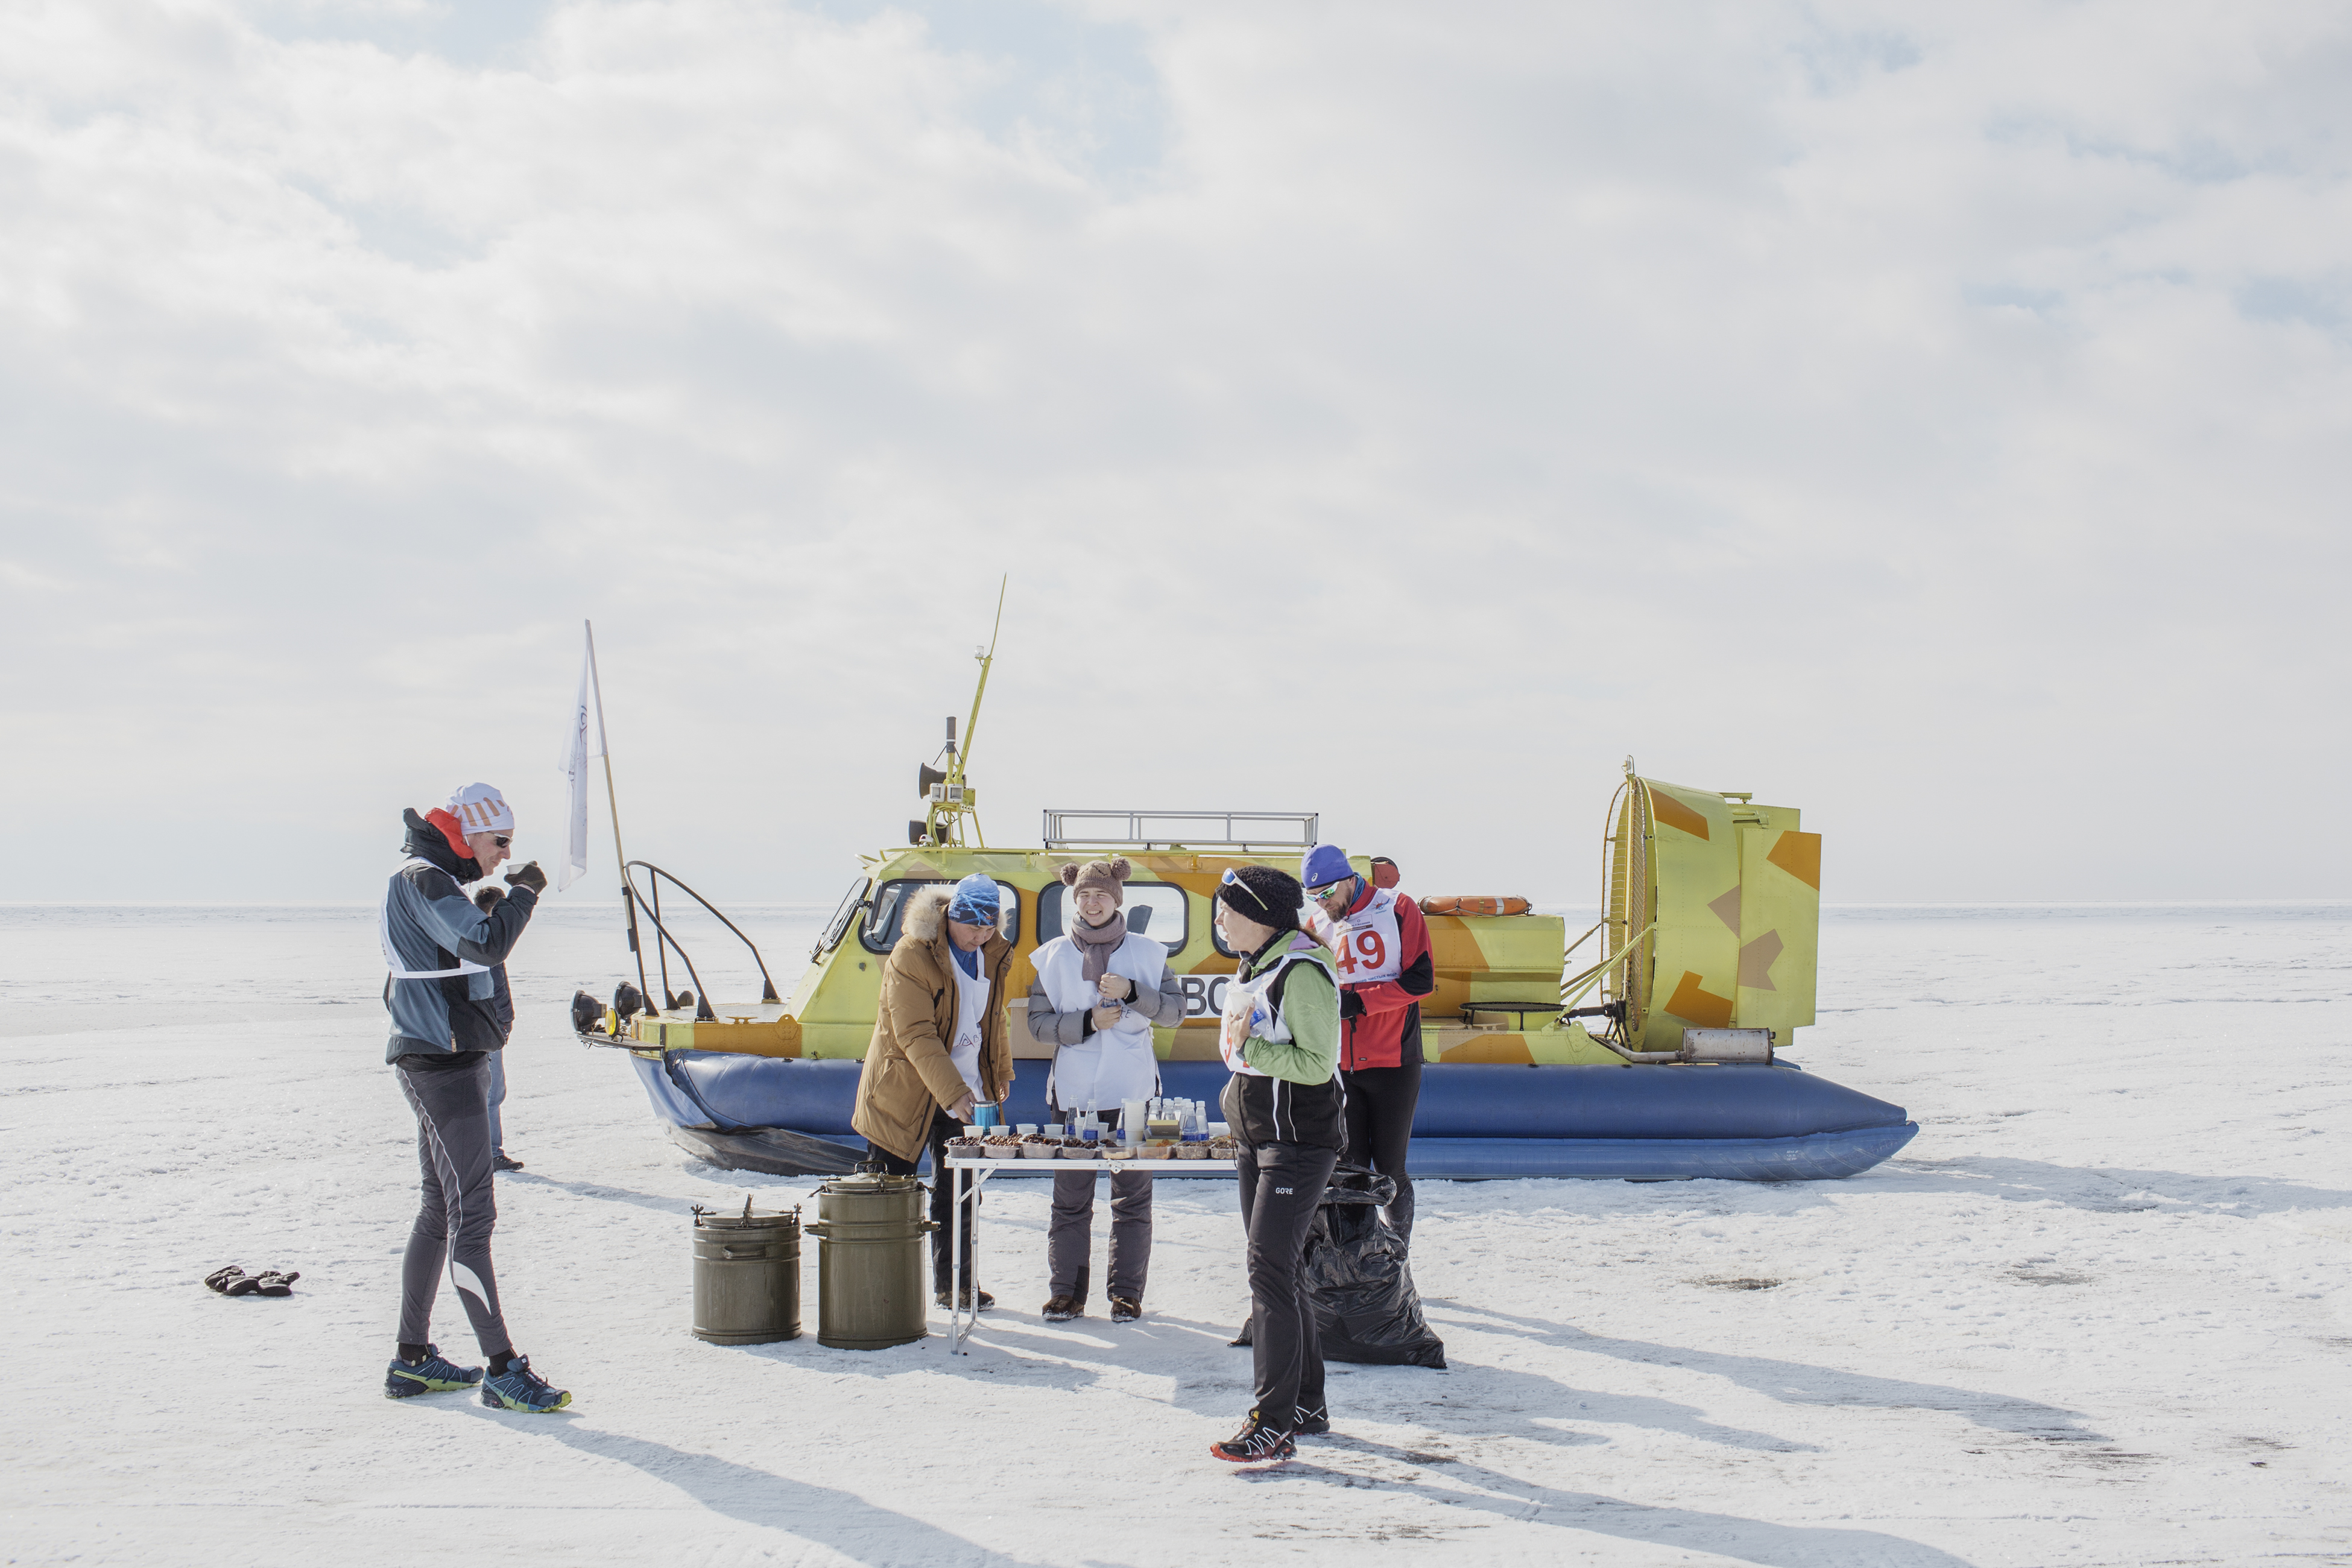 A snack and water table on the frozen surface of Lake Baikal during the ice marathon.